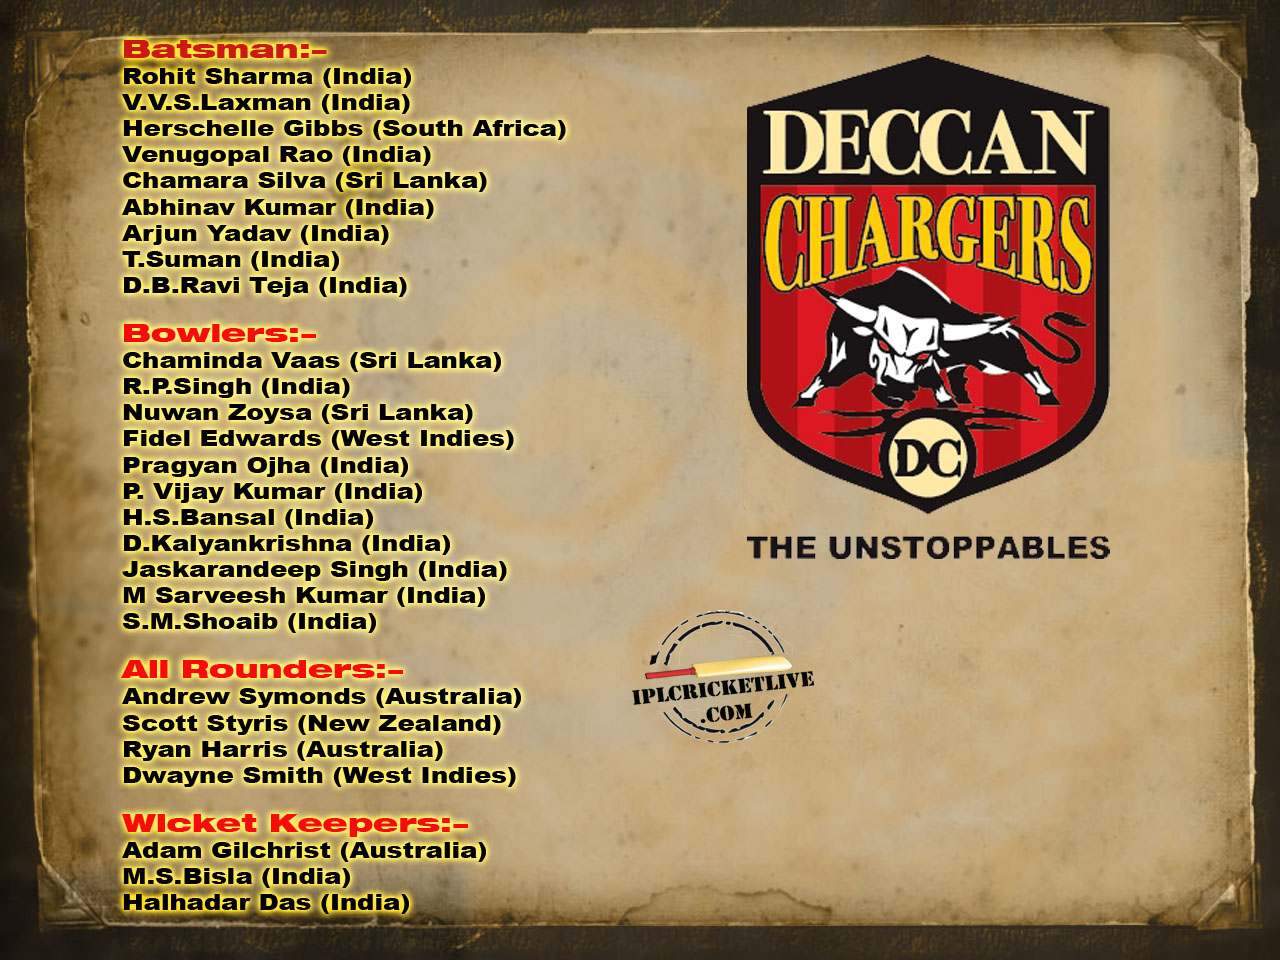 Ipl 2018 indian premier league 2018 ipl deccan chargers 2009 squad deccan chargers biocorpaavc Image collections